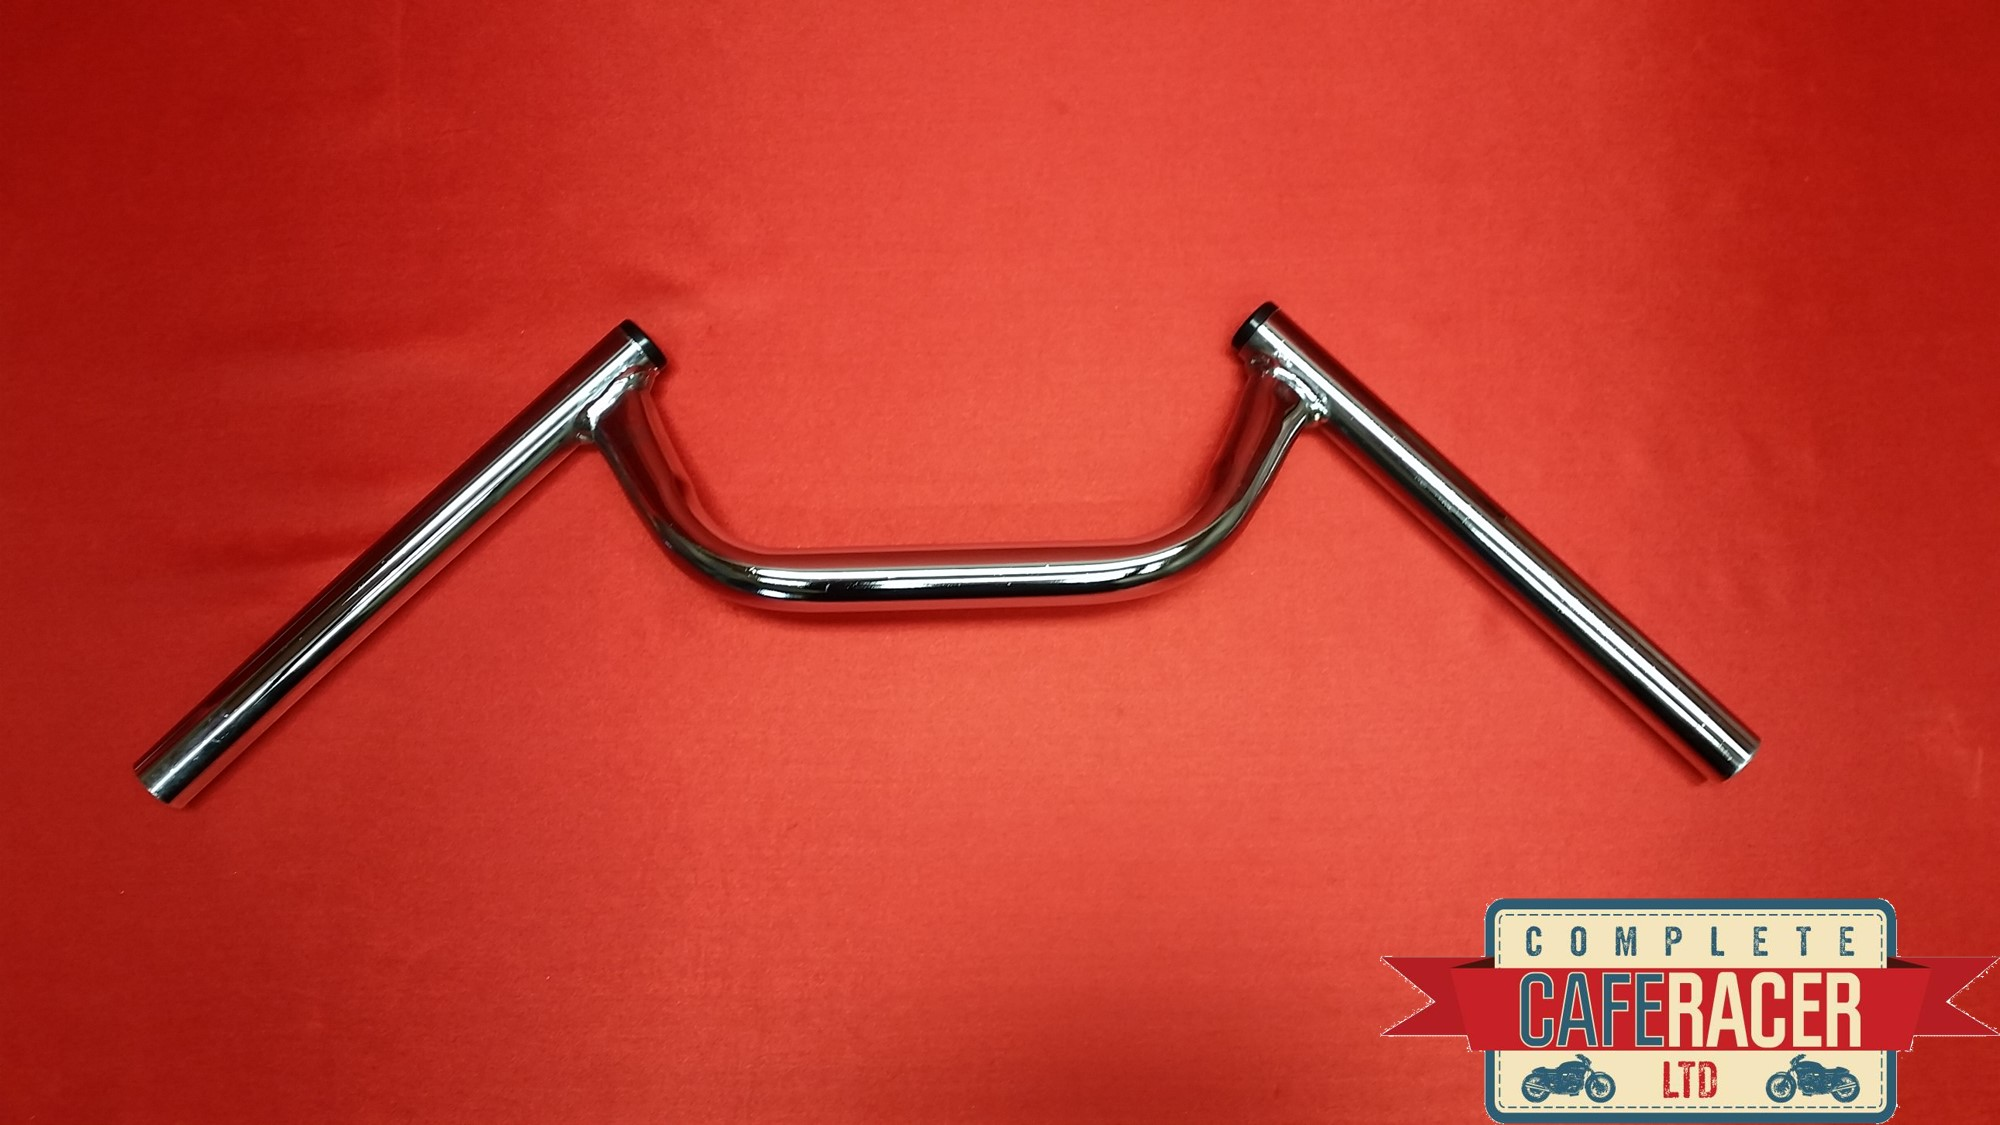 2ND'S CAFE RACER CHROME ACE BARS / CLUBMAN BARS *THESE ARE SECONDS*